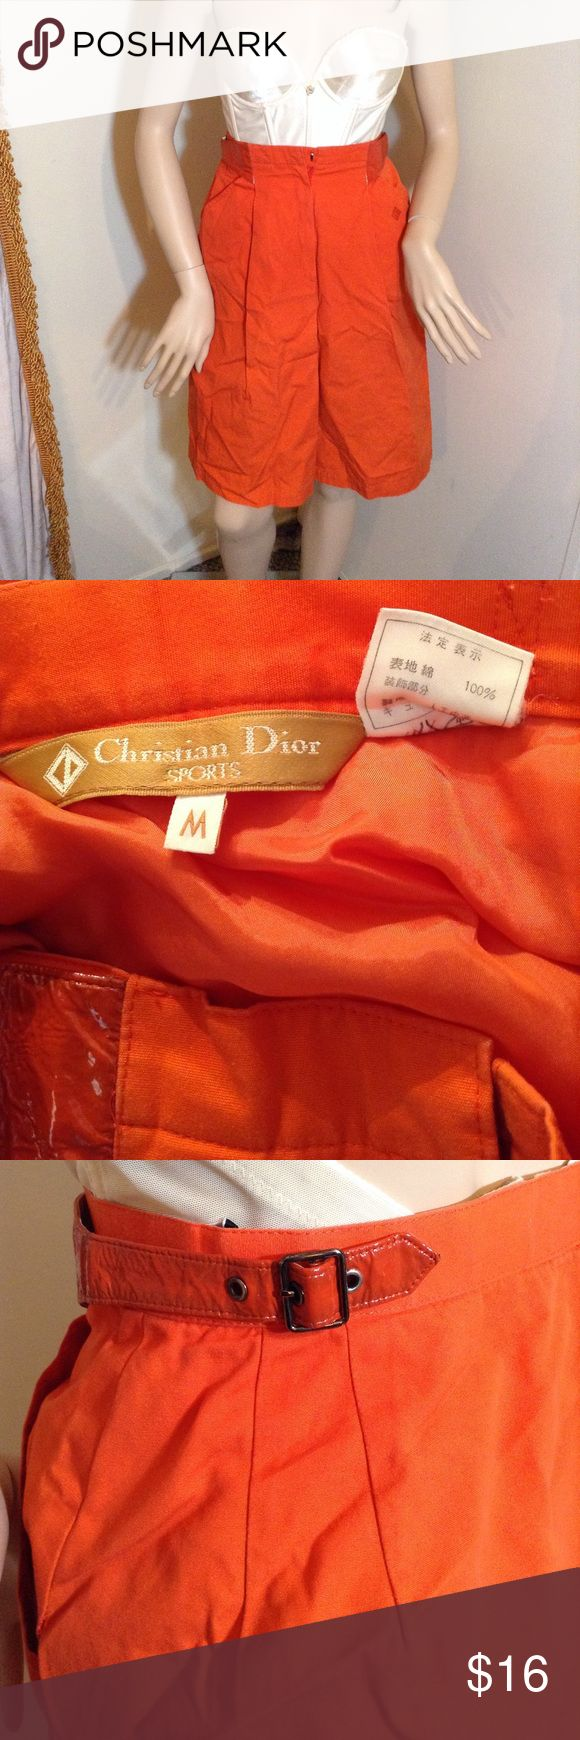 "Vintage Christian Dior Sports Orange Skirt Vintage Christian Dior Sports orange skirt. Two front pockets. Skirt is lined in orange fabric. Patent side buckles at the waist. The underside of both buckles is peeling from age. See picture closeup. The patent buckle material has discoloration and is worn/fragile from age. Price reflects this.  Fabric has a few small stains throughout, not too noticeable when wearing.  Front zipper, metal hook closure. Waist laid flat approx. 12"" across. Skirt…"